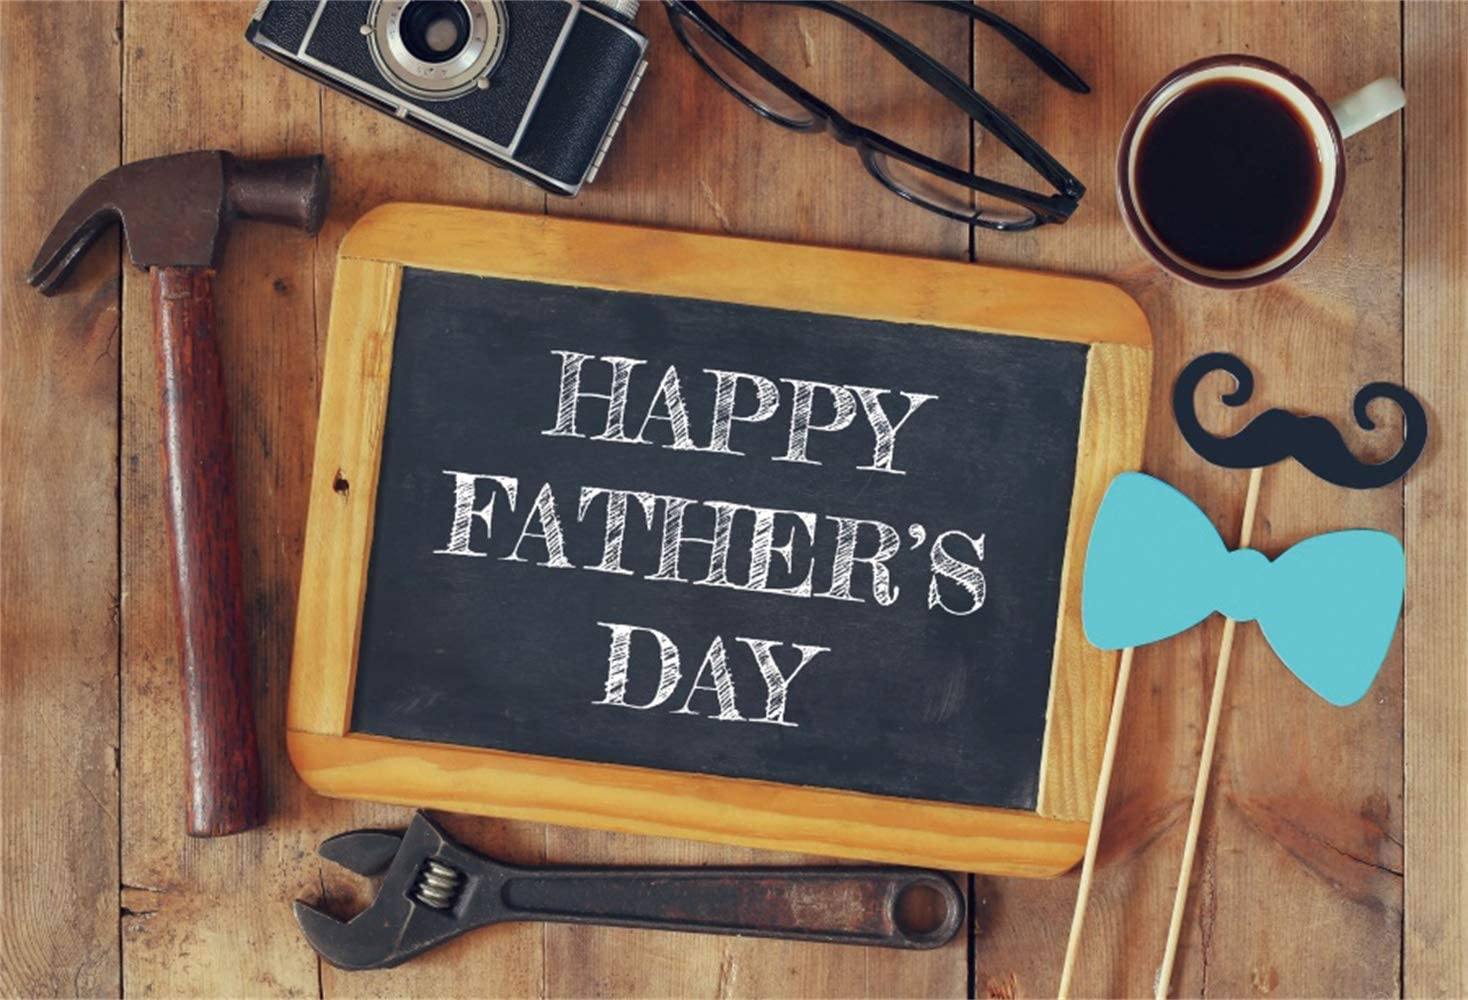 Leowefowa Happy Father's Day Backdrop 5x3ft Vinyl Old Wrench Hammer Camera Coffee Blackboard Photography Background Father's Day Party Banner Photo Booth Greeting Card